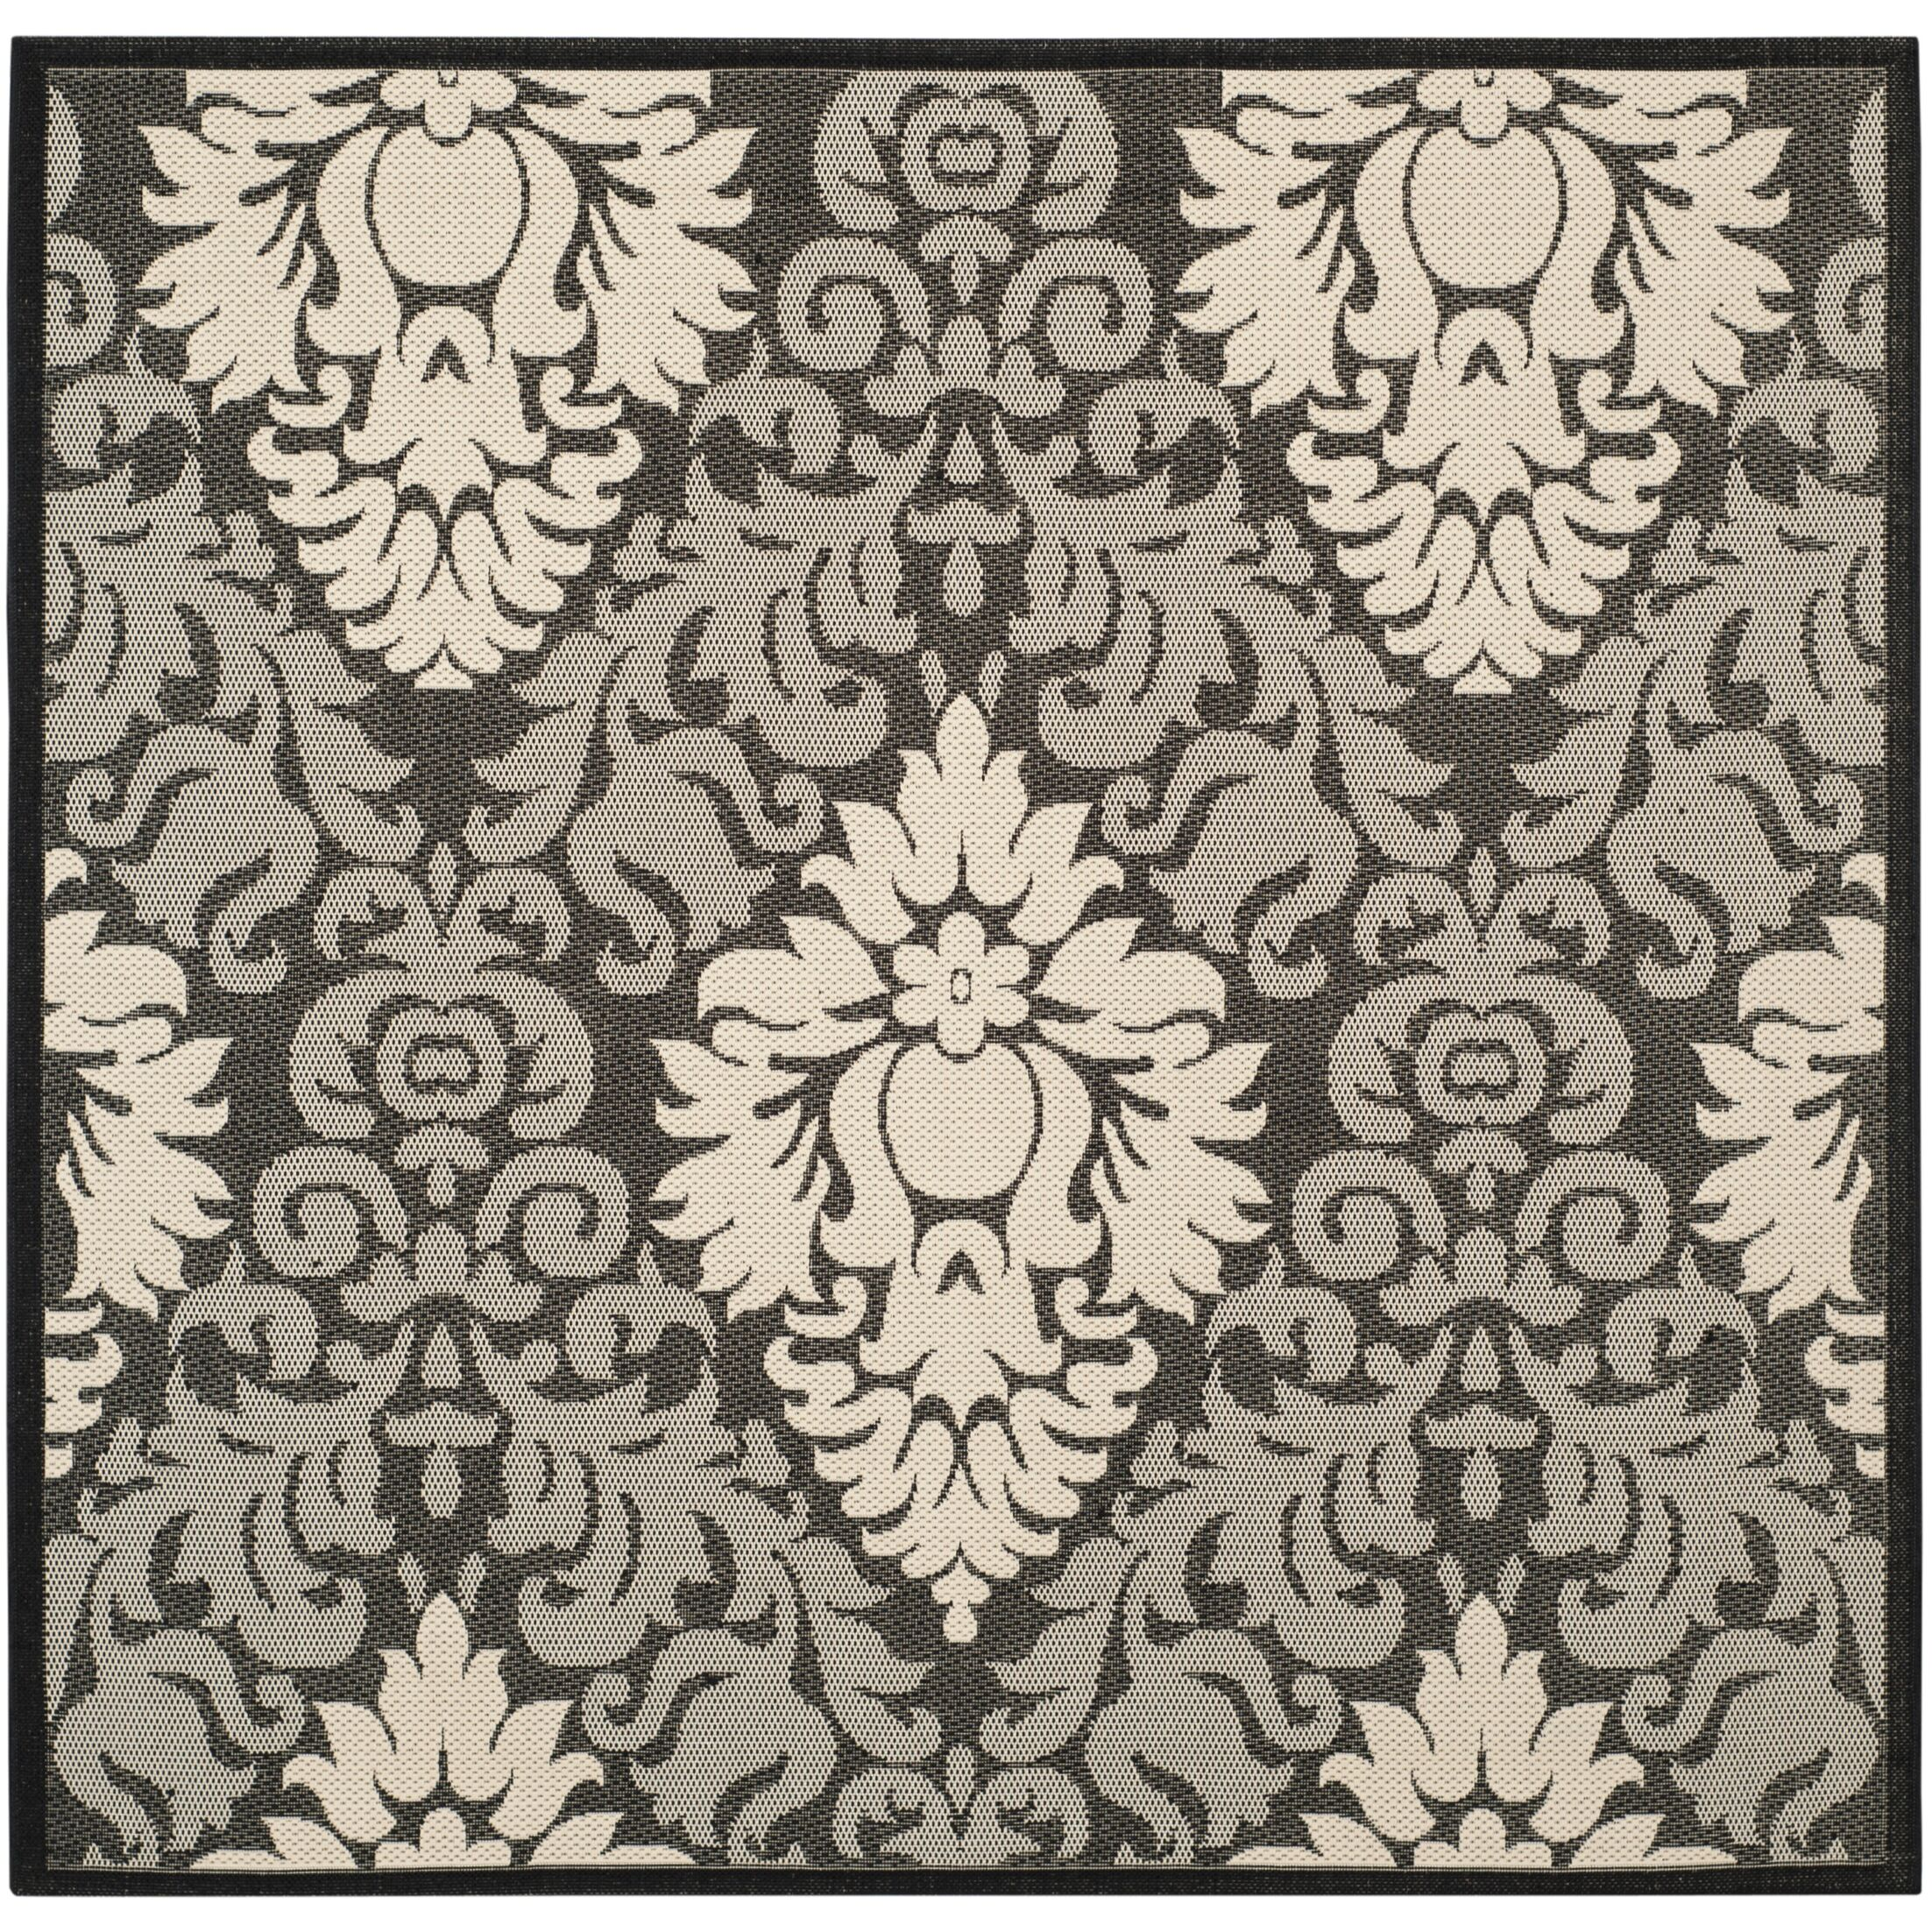 Jarrow Black/Sand Outdoor Rug II Rug Size: Square 7'10